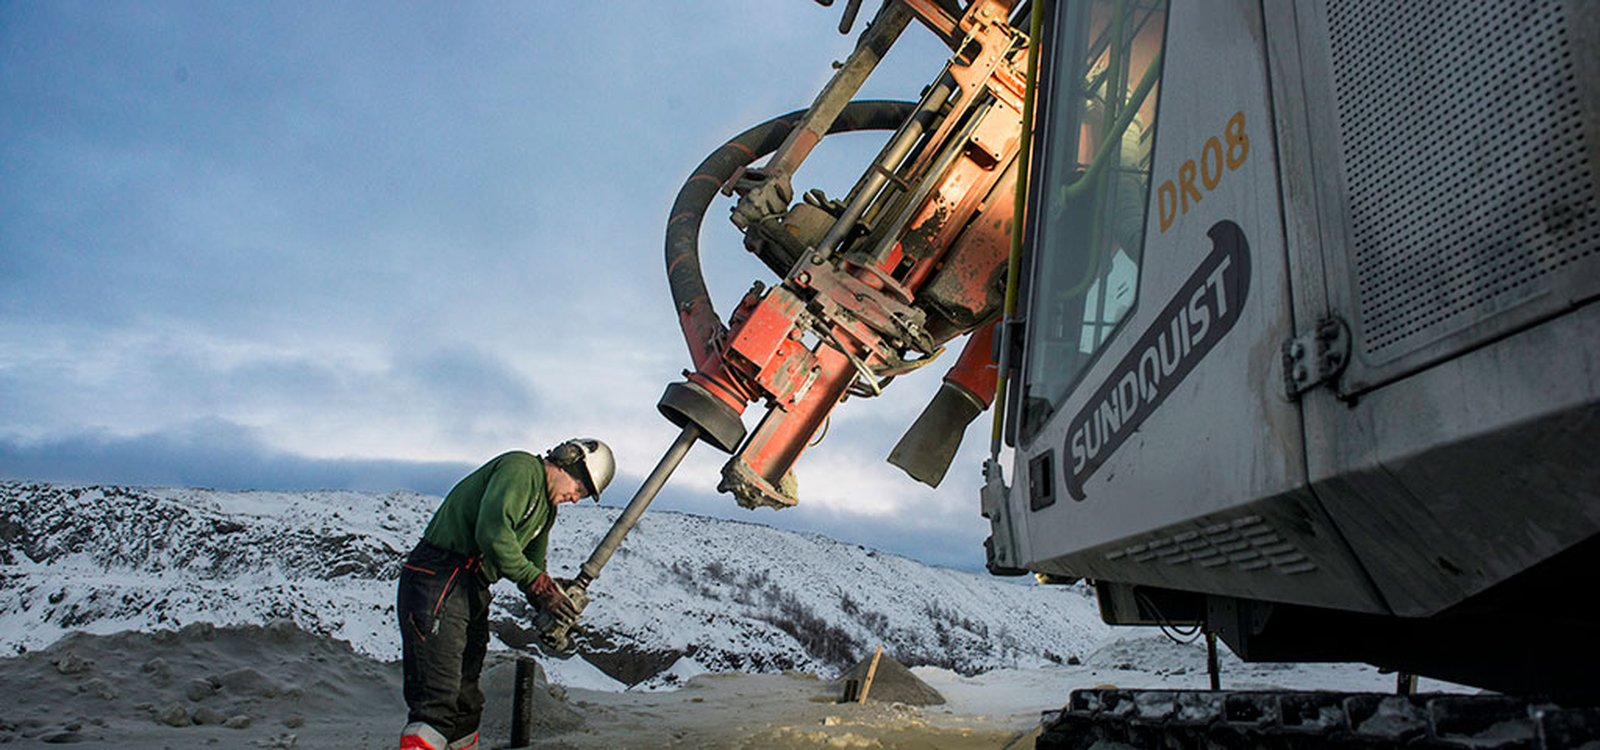 At Sydvaranger, top hammer drilling uses less fuel with better penetration than down-the-hole drilling.